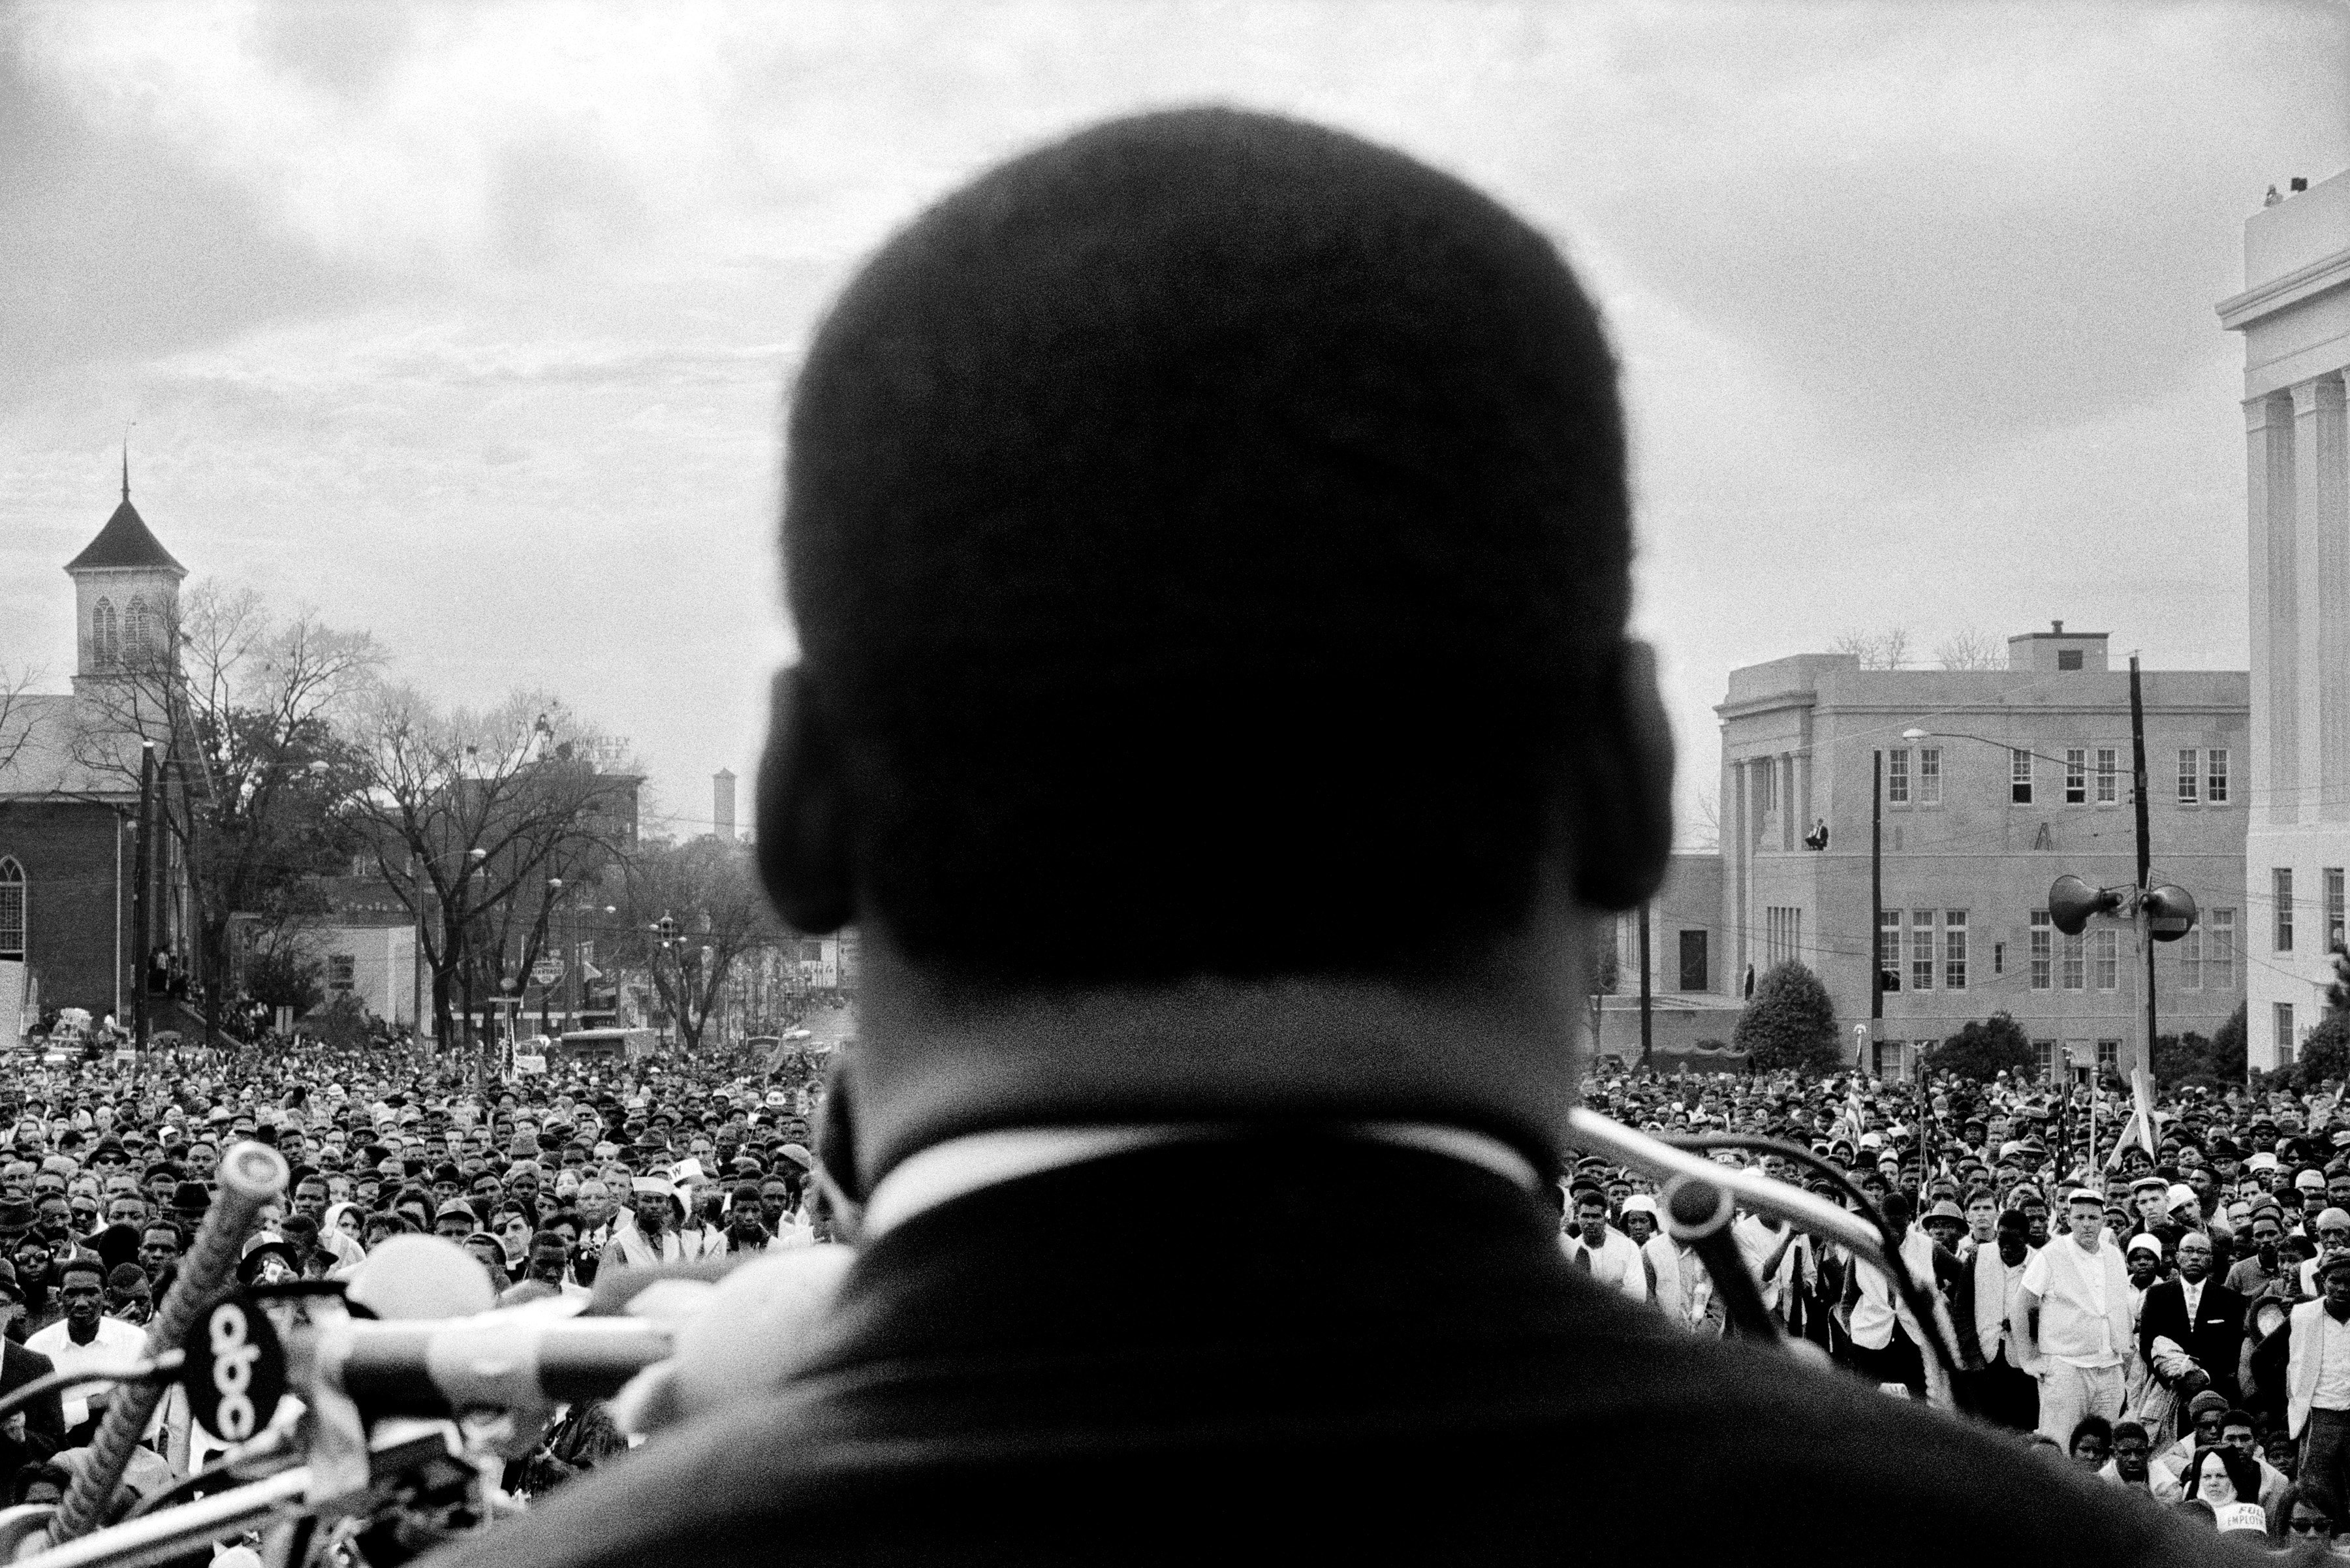 Dr. Martin Luther King, Jr. spoke in front of 25,000 civil rights marchers at the conclusion of the Selma to Montgomery march in front of Alabama state capital building on March 25, 1965 in Montgomery, Ala.